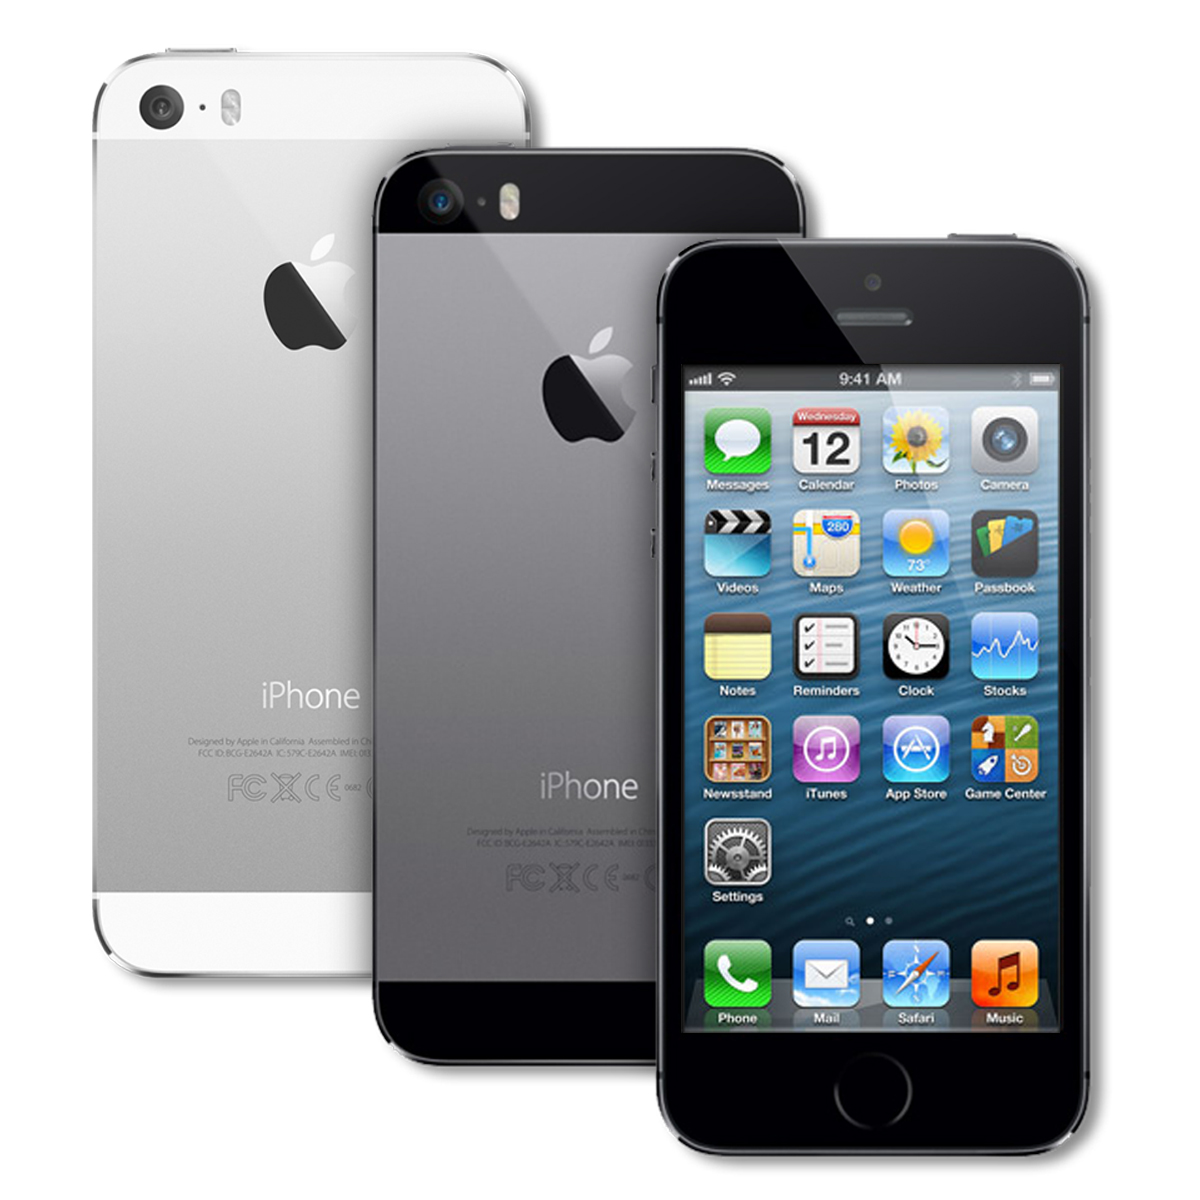 Iphone 5s refurbished best buy